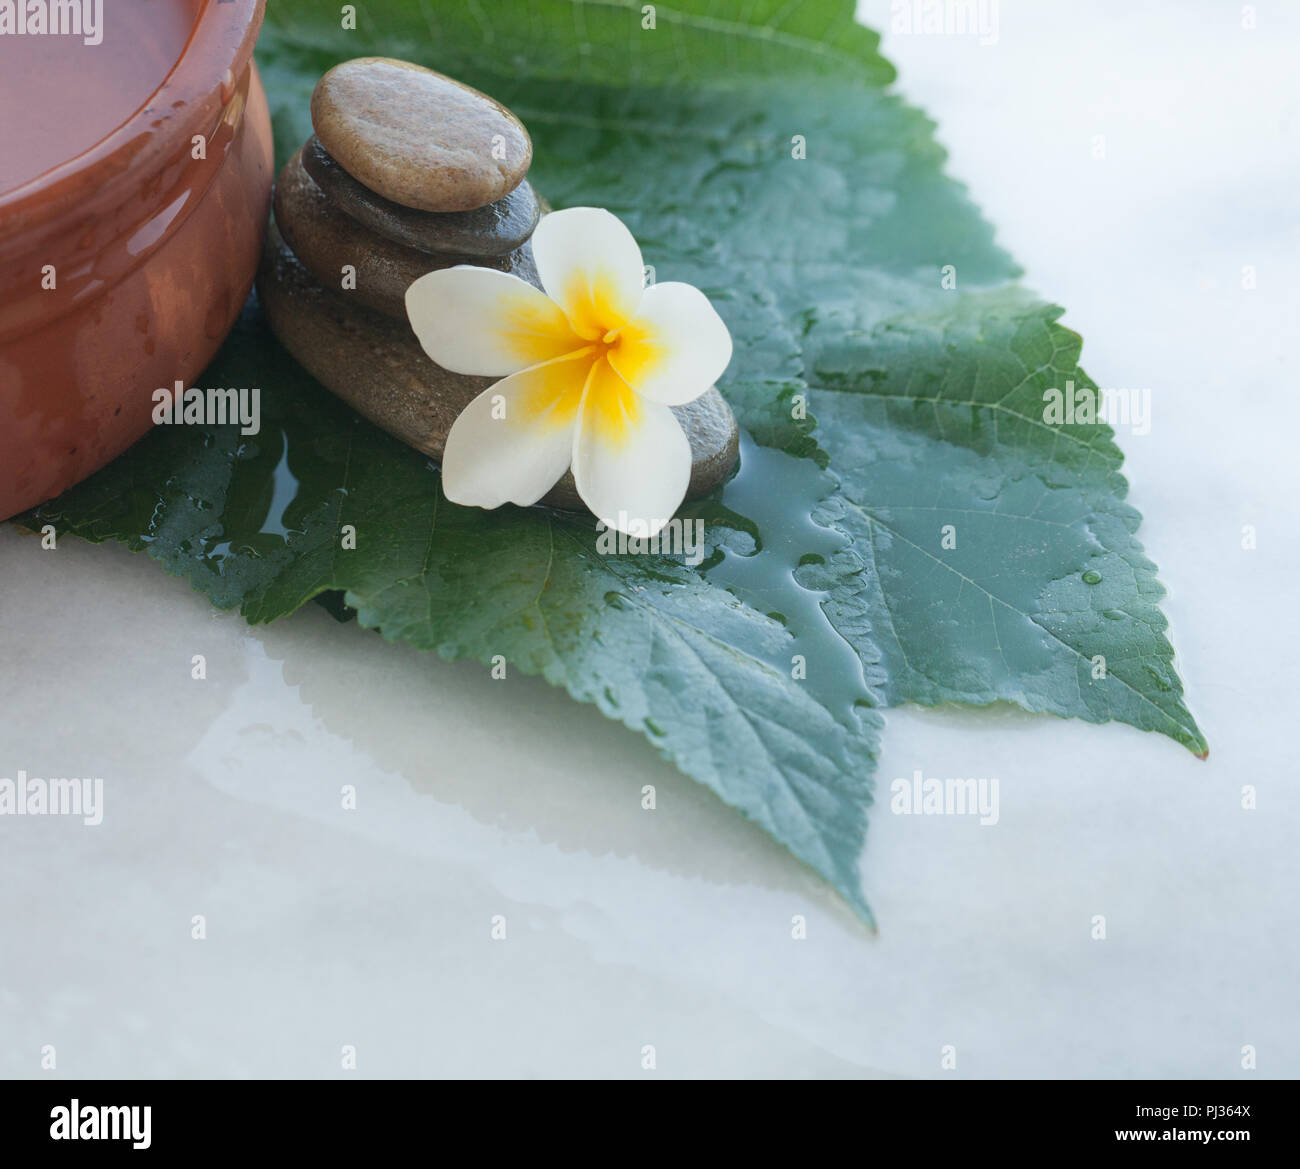 Tropical White Flower On Green Big Leaves And Stones For Massage